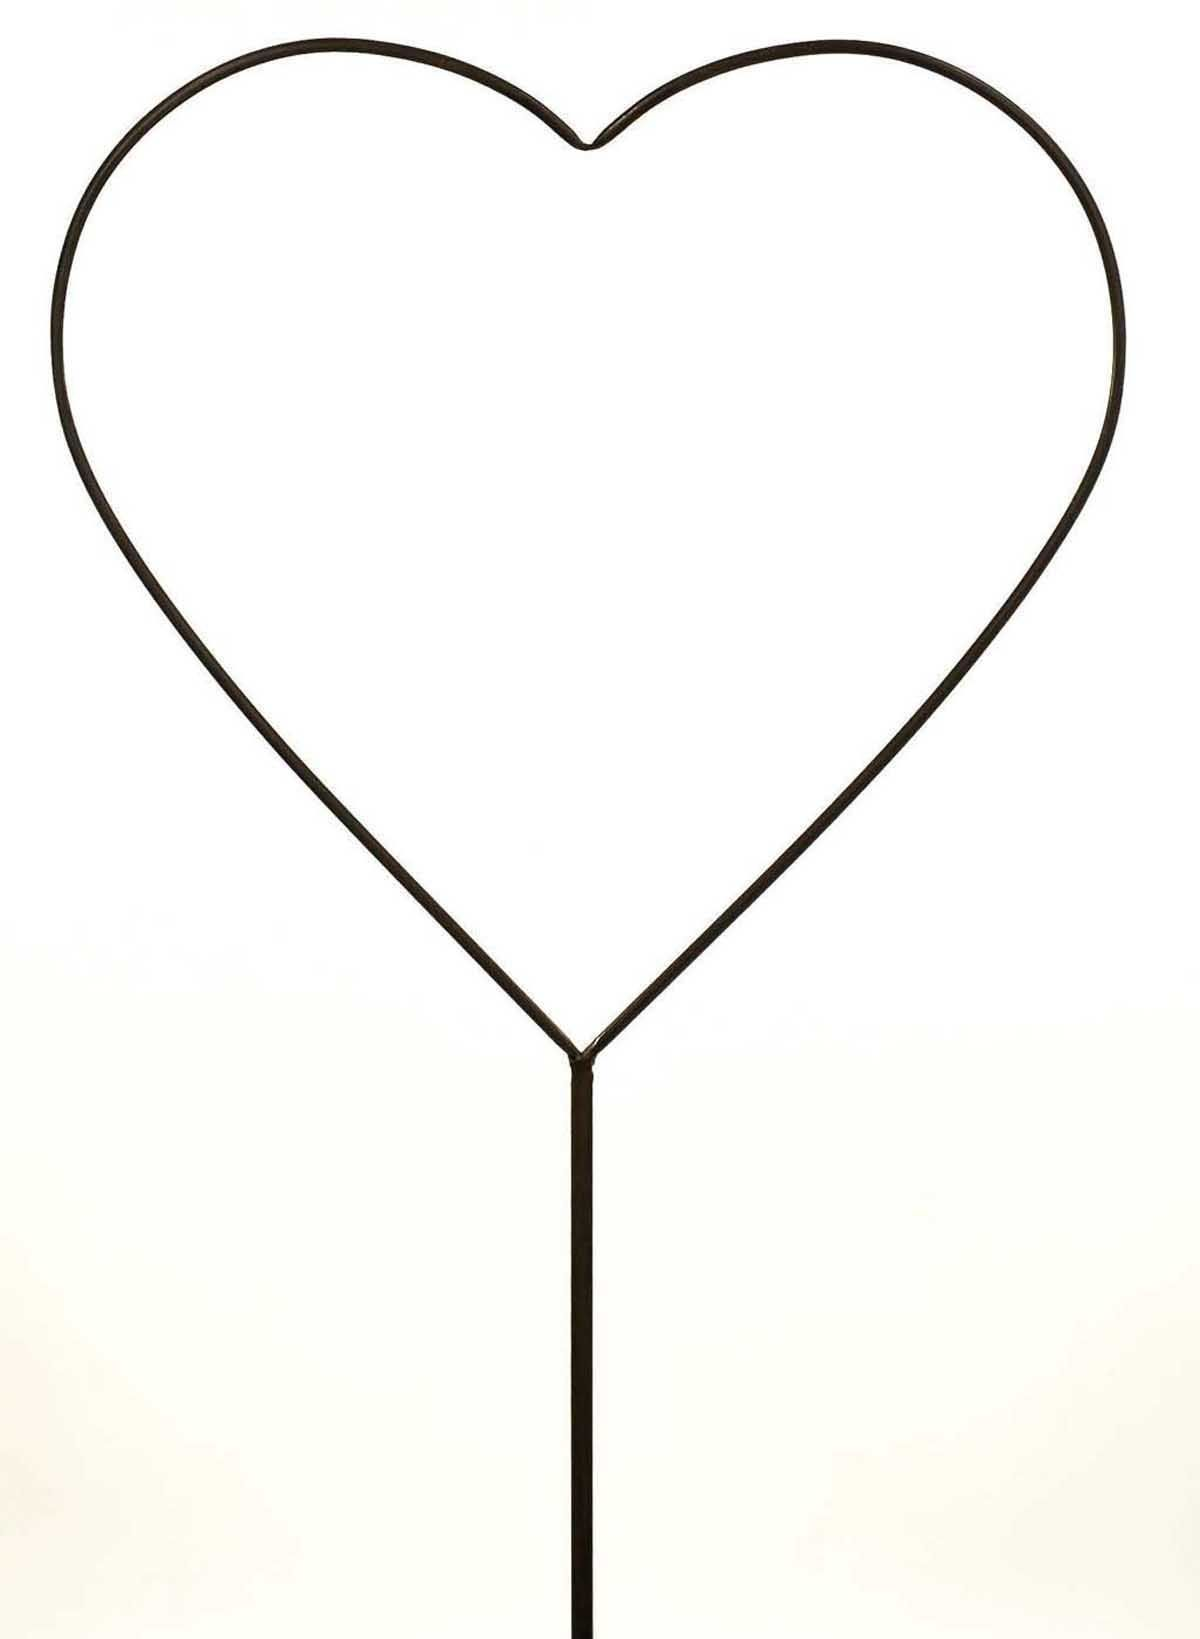 Metal Large Heart Shaped Garden Flower Bed Spike Ornament Stake